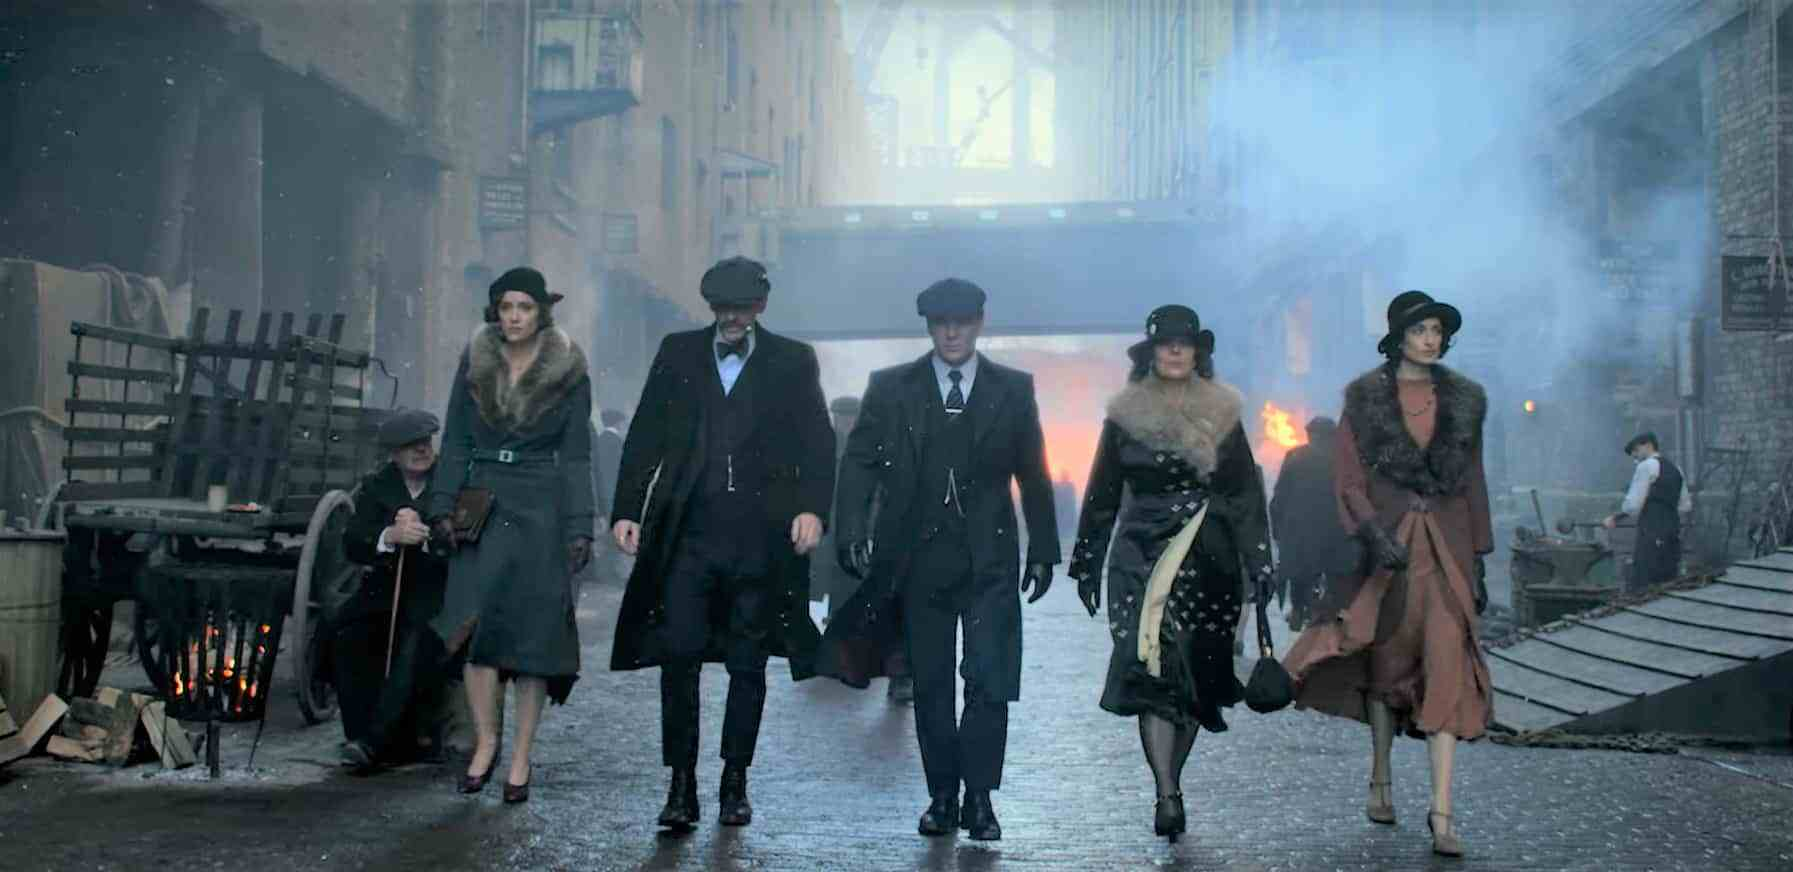 Peaky Blinders Season 6, Peaky Blinders Season 6 Official Release Date Announced? Who Will Be In Cast? And What We Can Expect About Storyline?